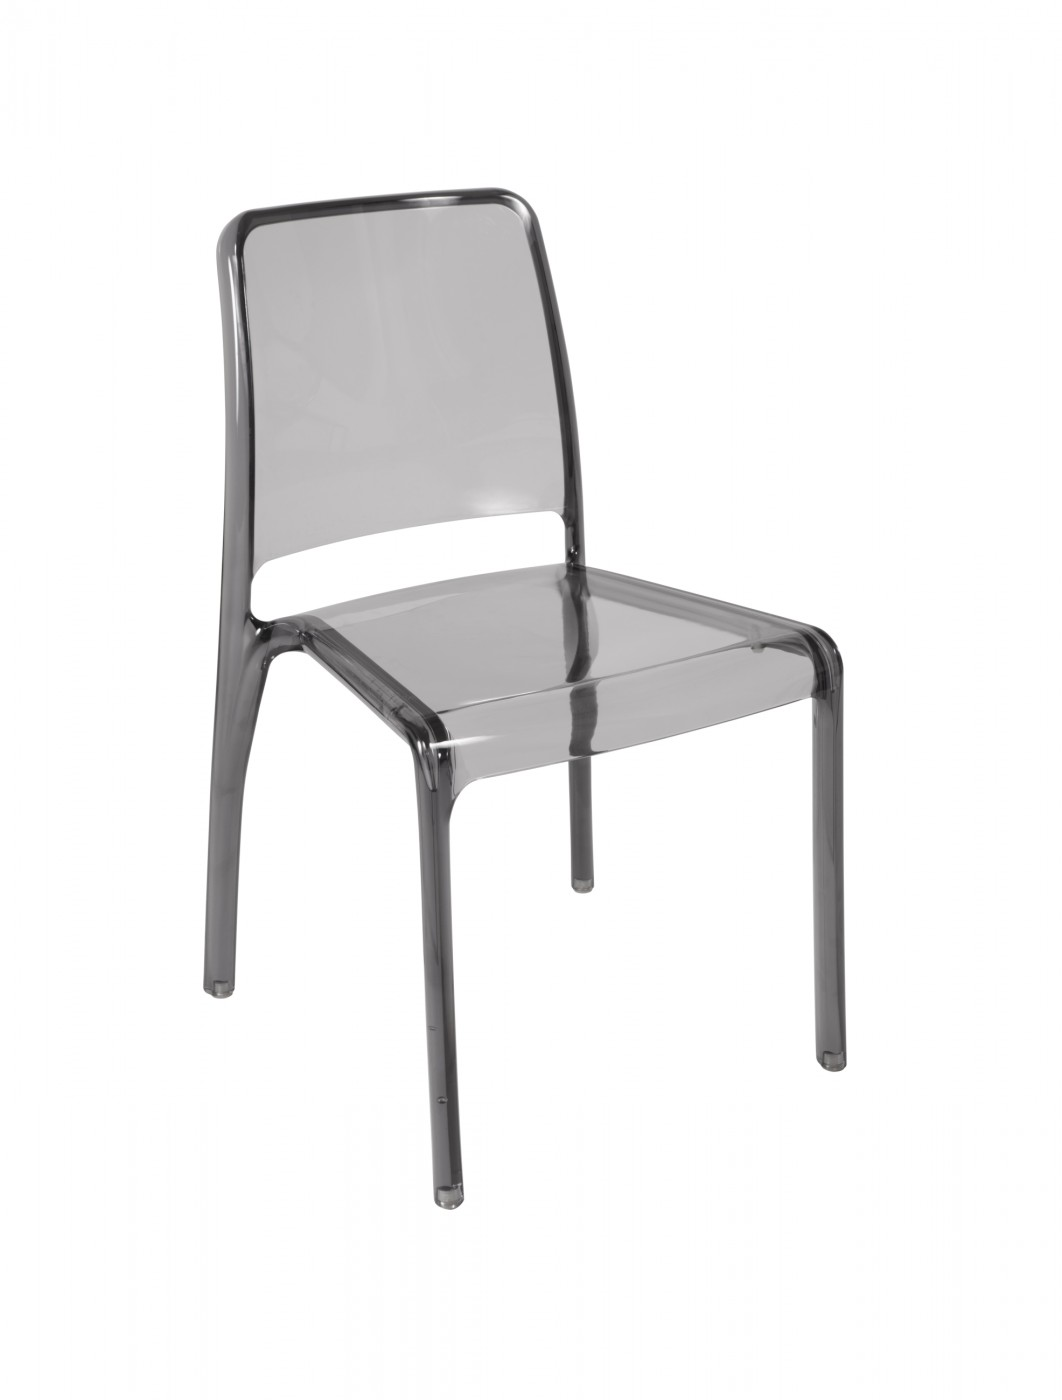 clarity designer polycarbonate stacking chairs 6908 | 121 office